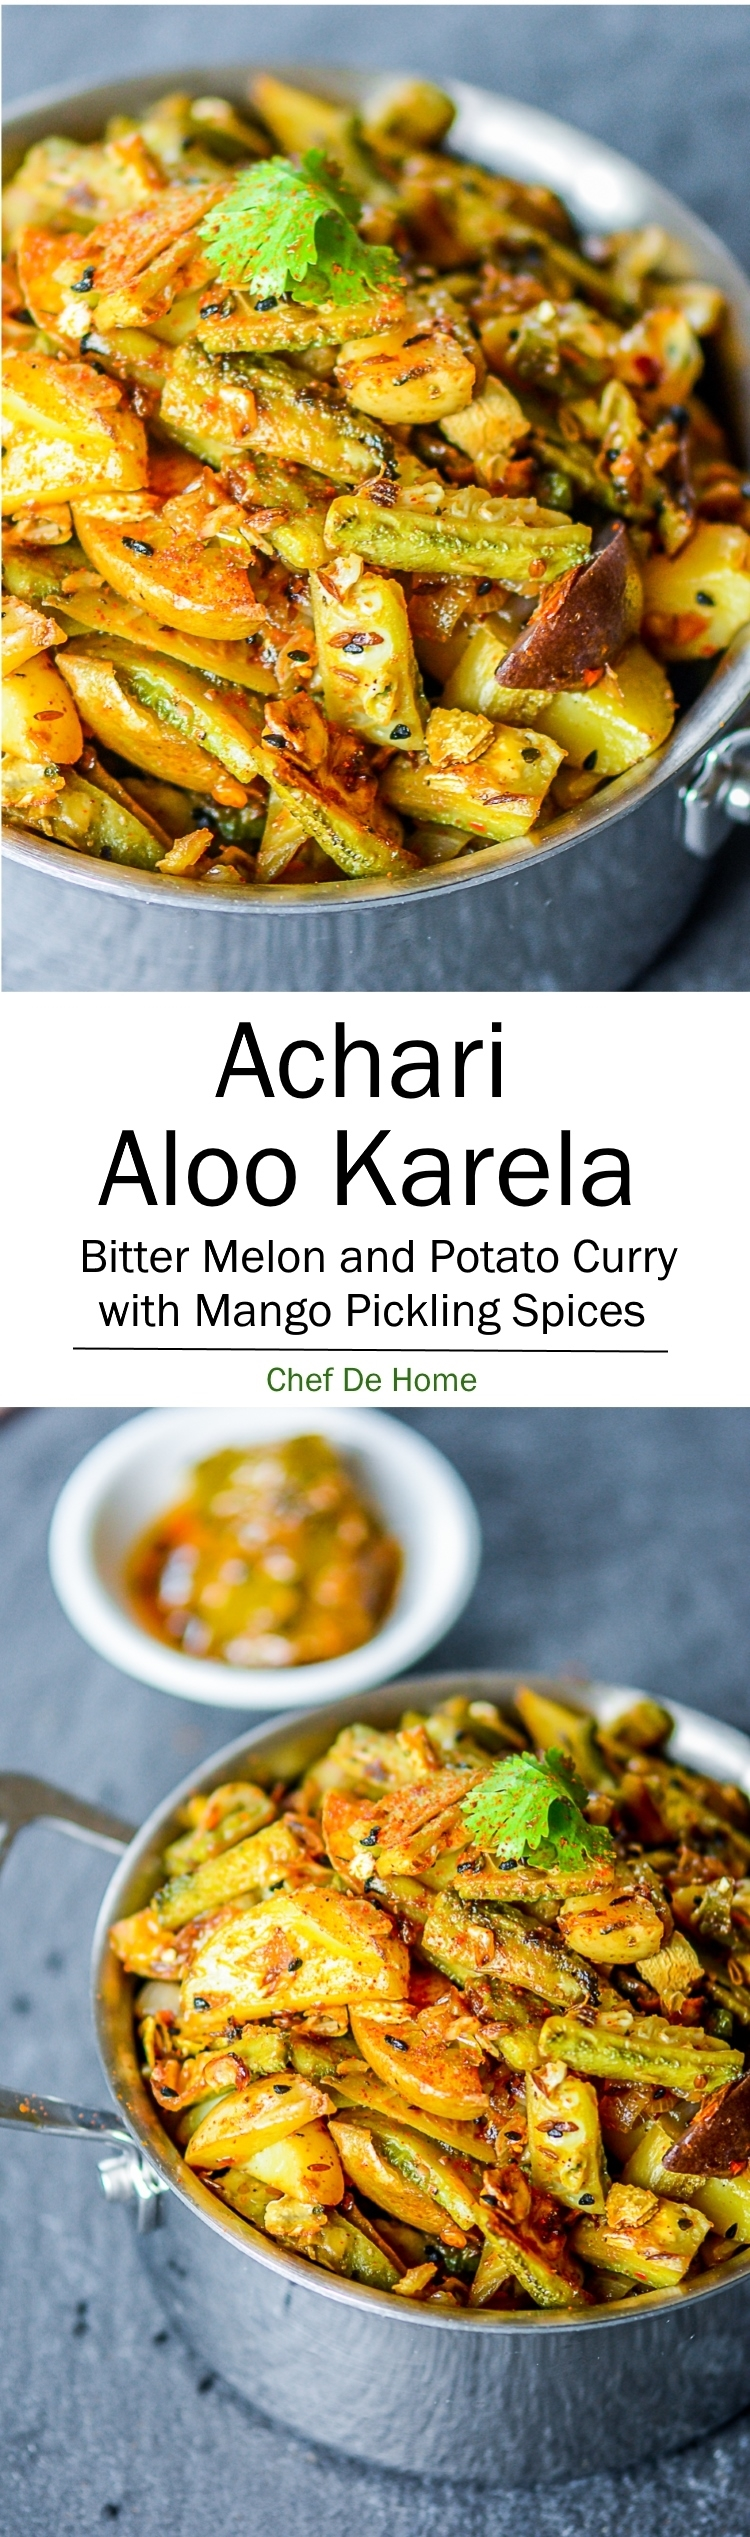 Vegetarian Indian Dinner with Achari Aloo Karela Biter Melon Potato Stir-fry | chefdehome.com